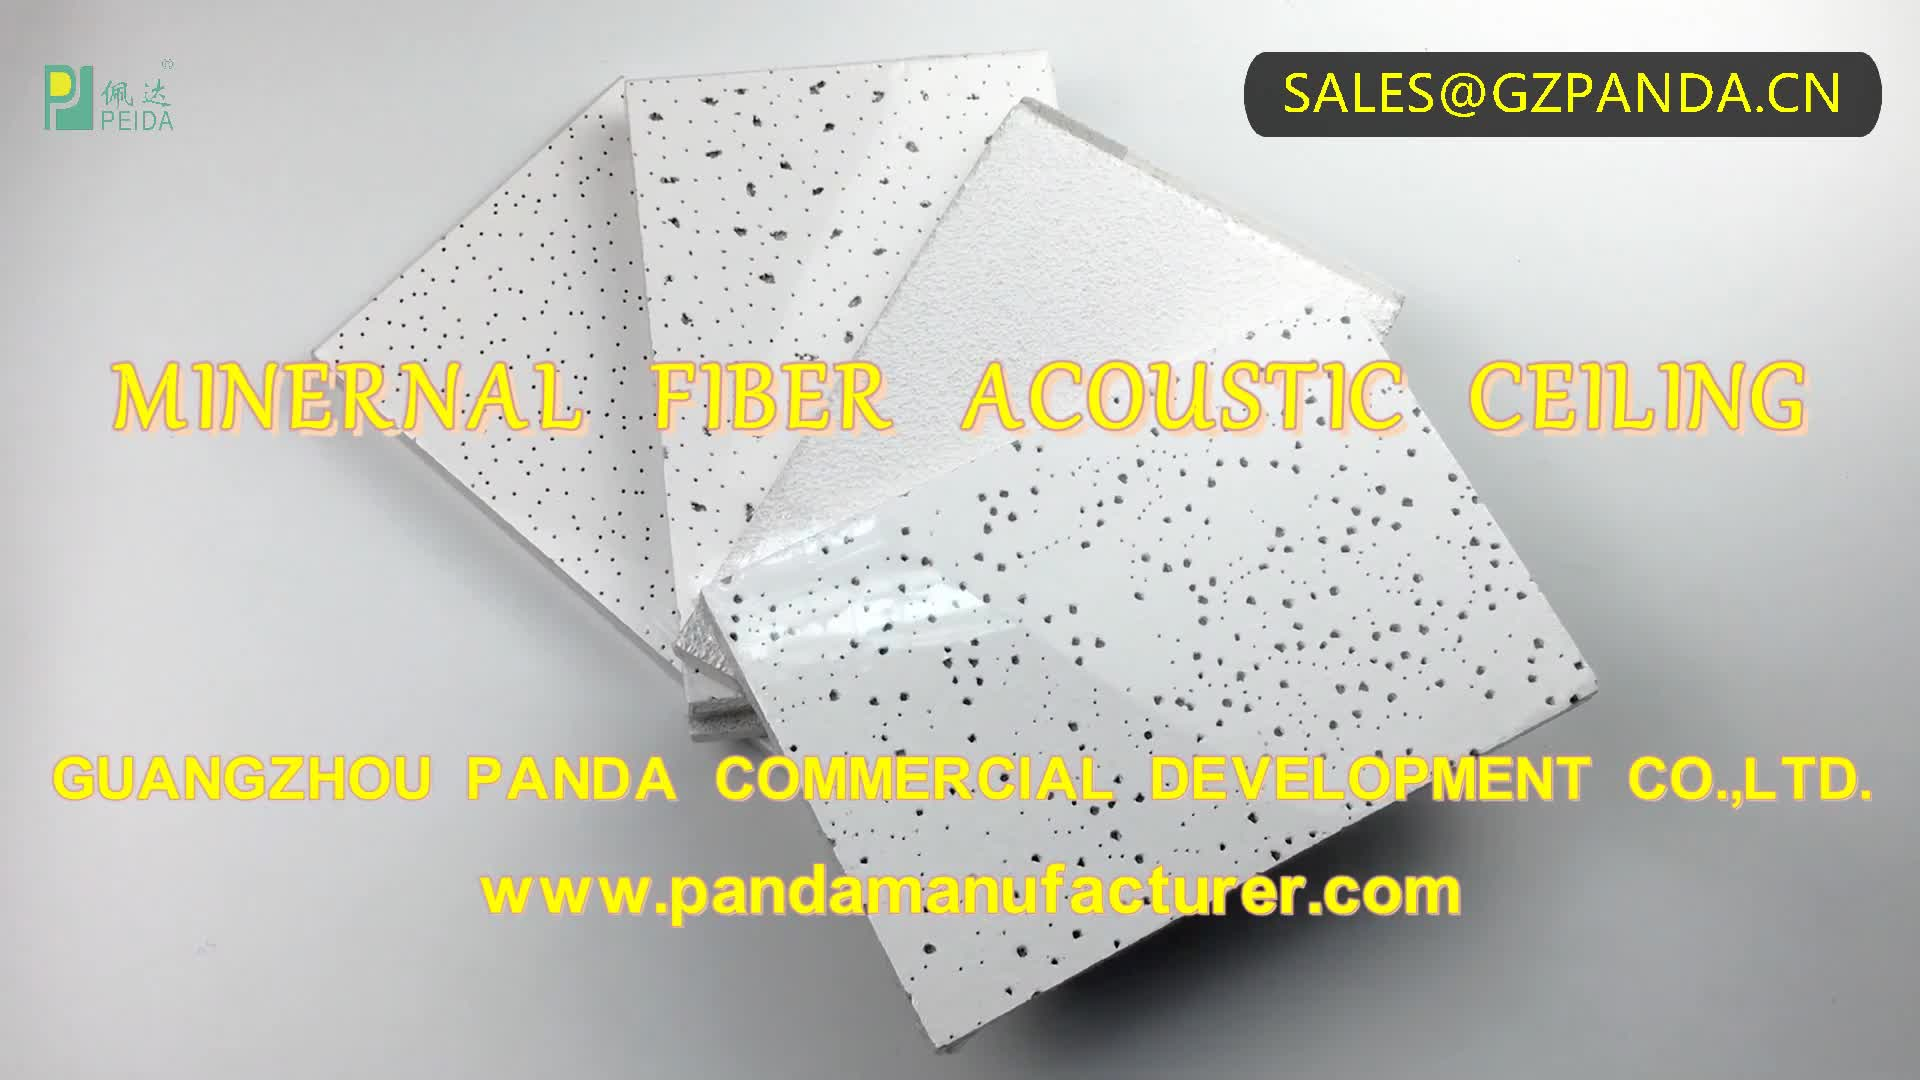 Black Perforation Ceiling Board M-P13 6mm